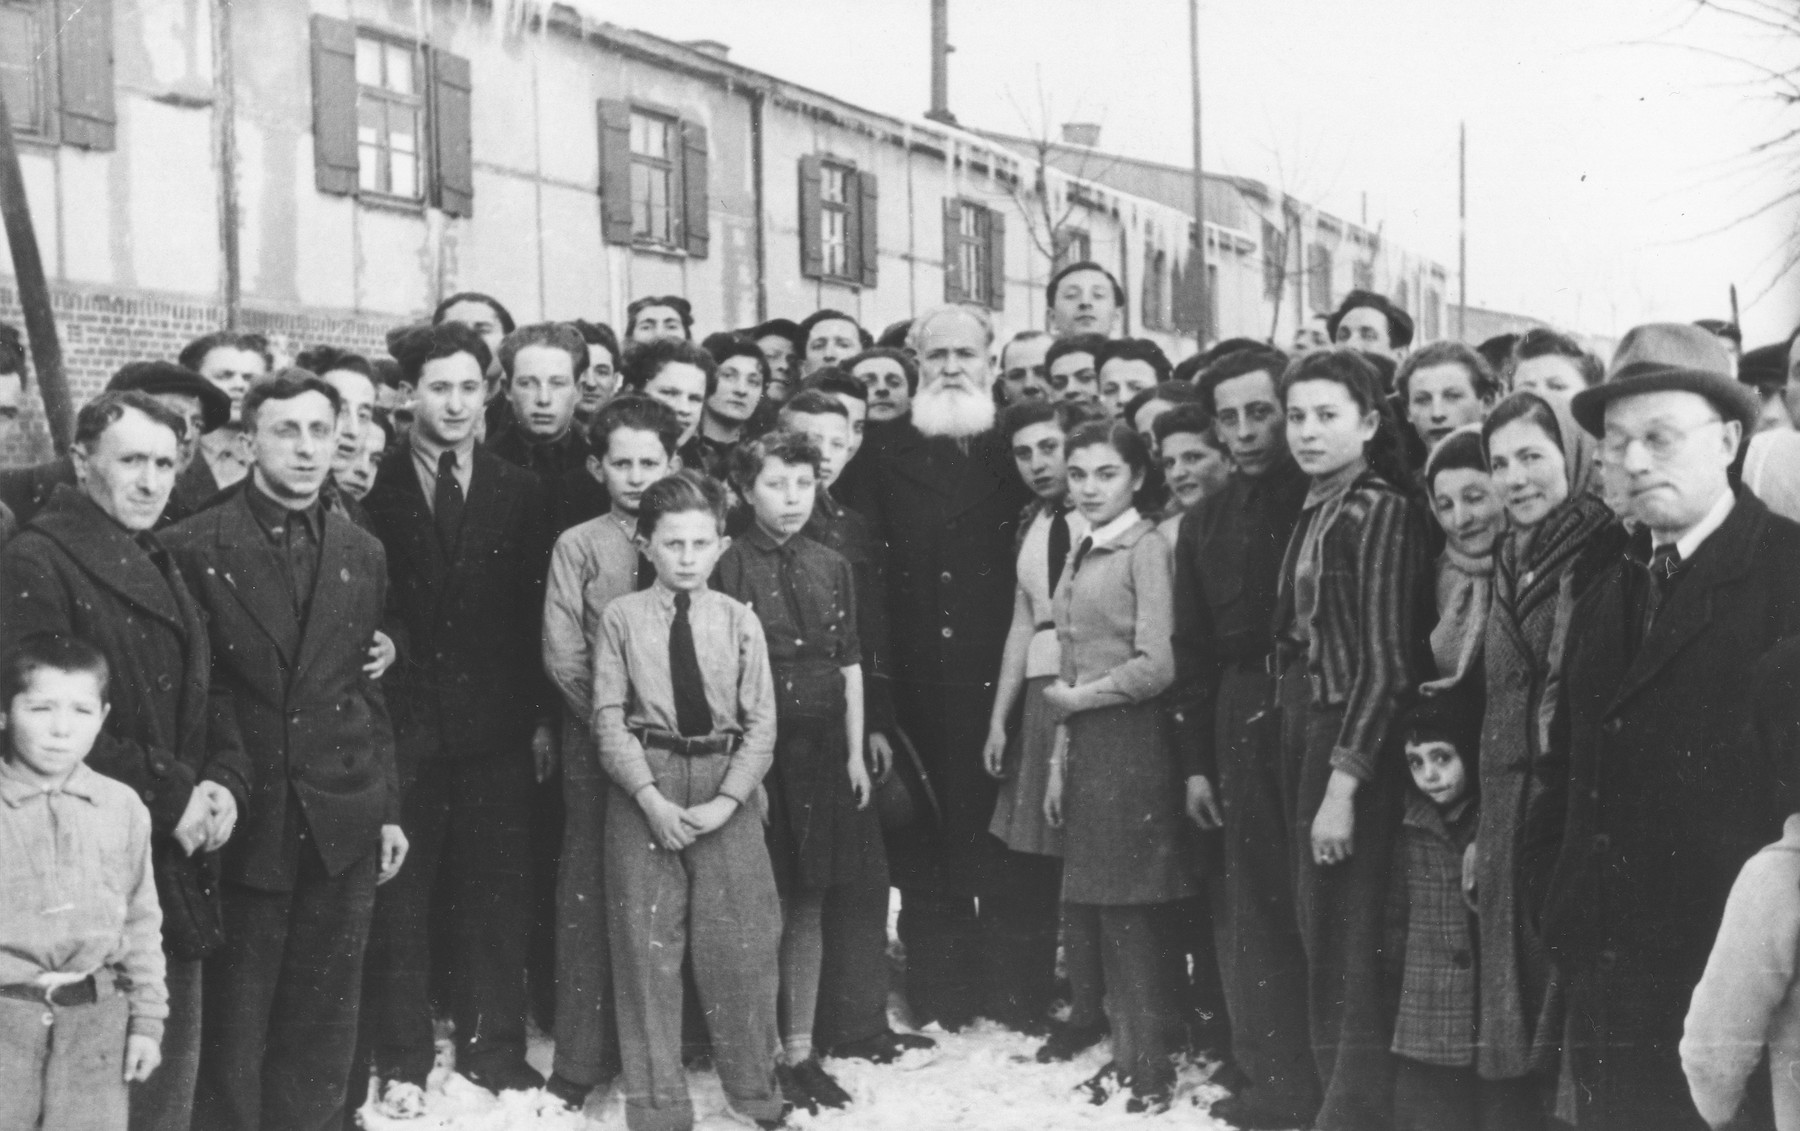 Jewish DPs pose with Zionist leader, Jacob Zerubavel, during his visit to the Ziegenhain displaced persons camp.